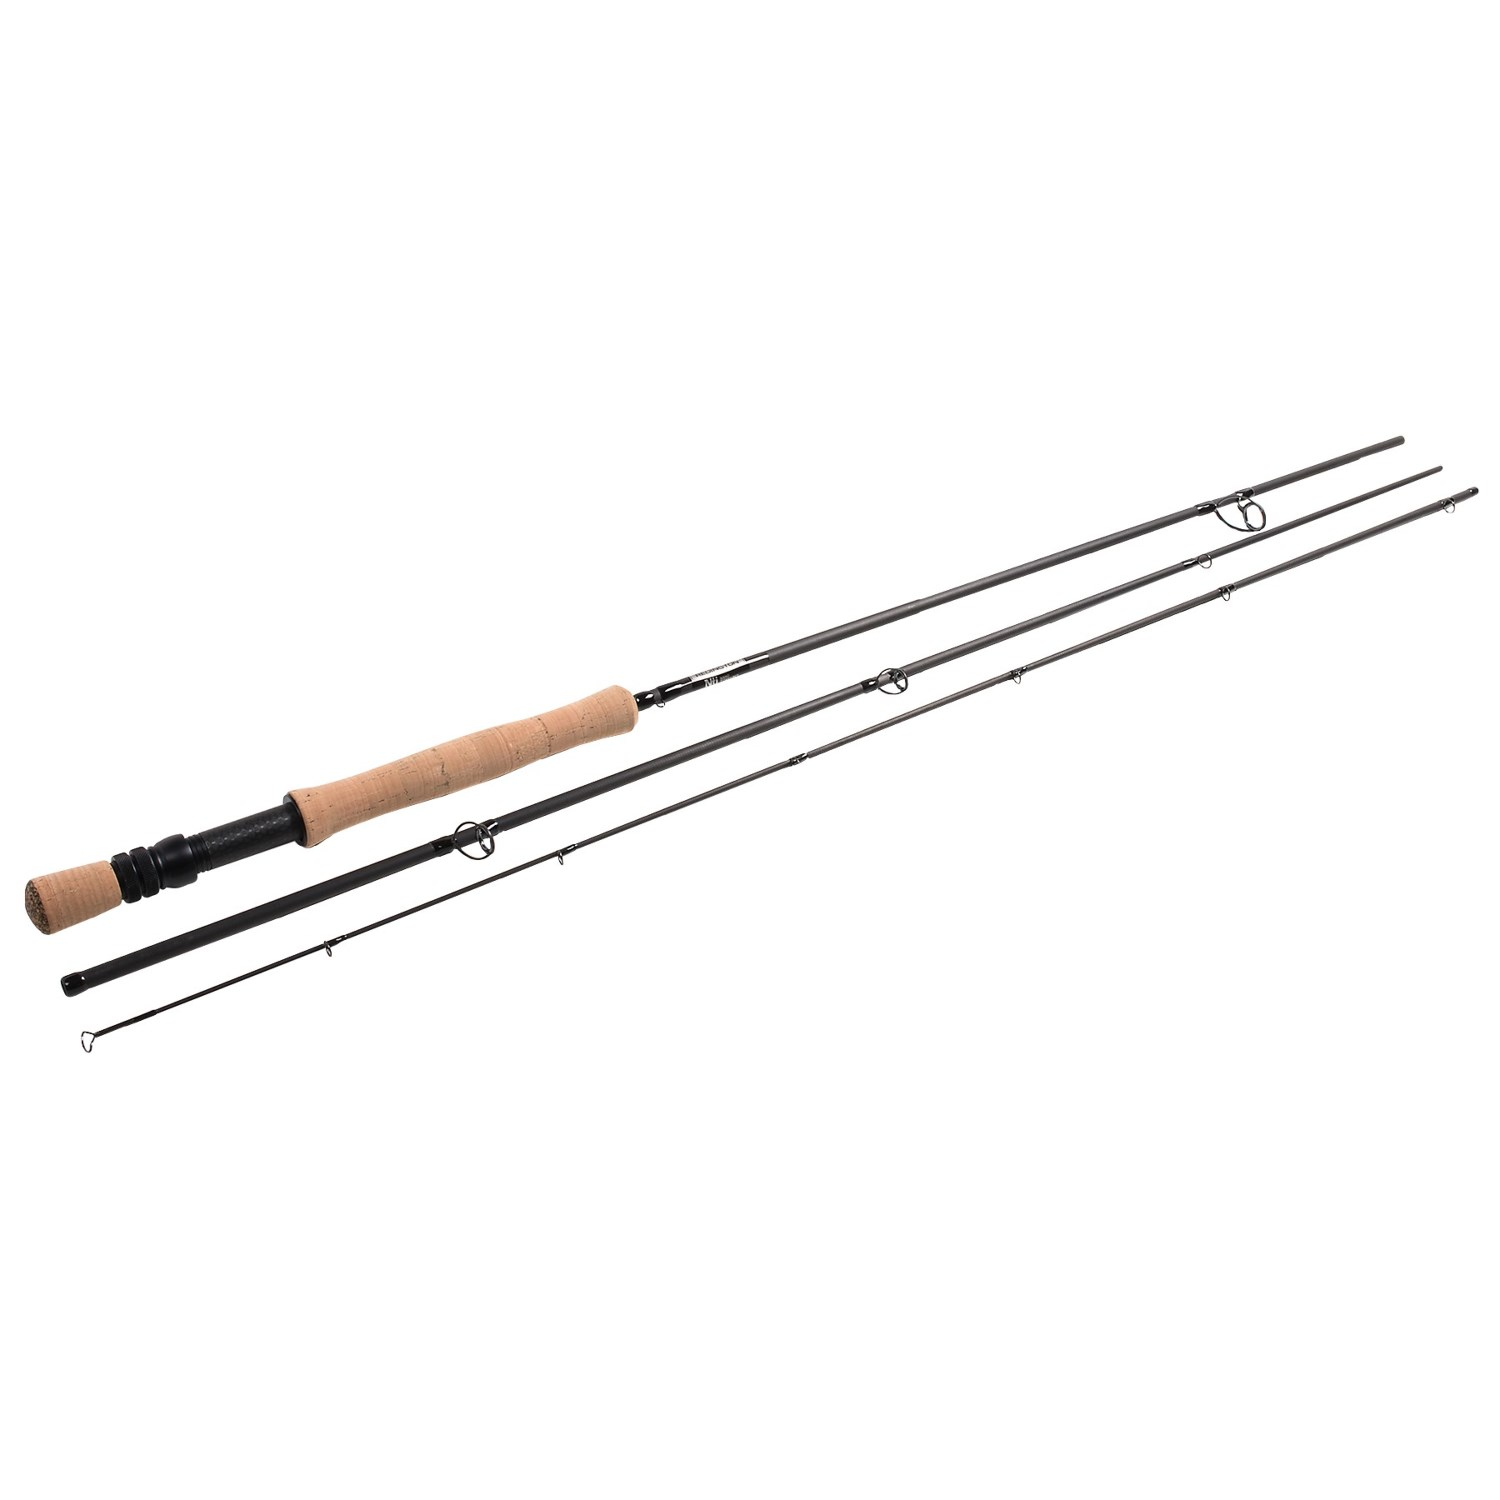 Redington nano titanium fly fishing rod 3 piece 8190v for 3 piece fishing rod